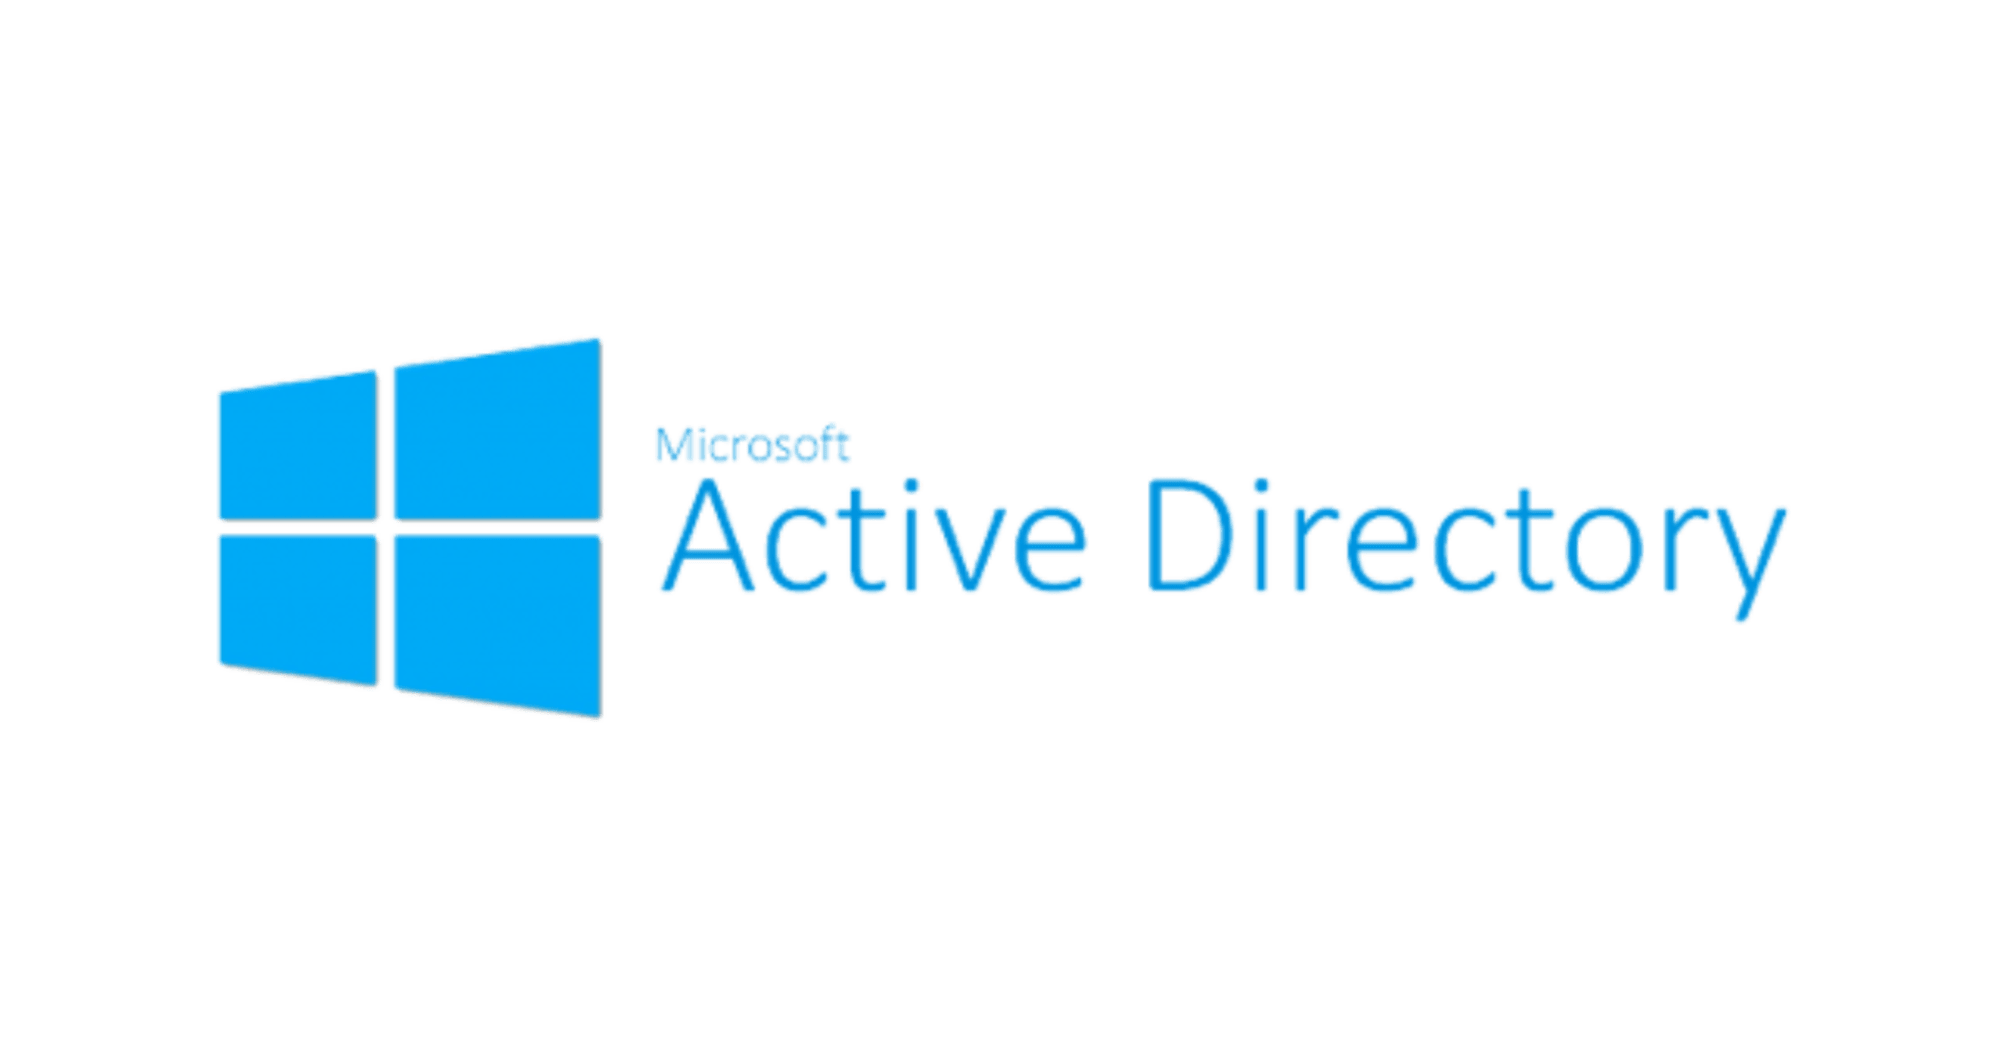 Managing Active Directory Groups using PowerShell